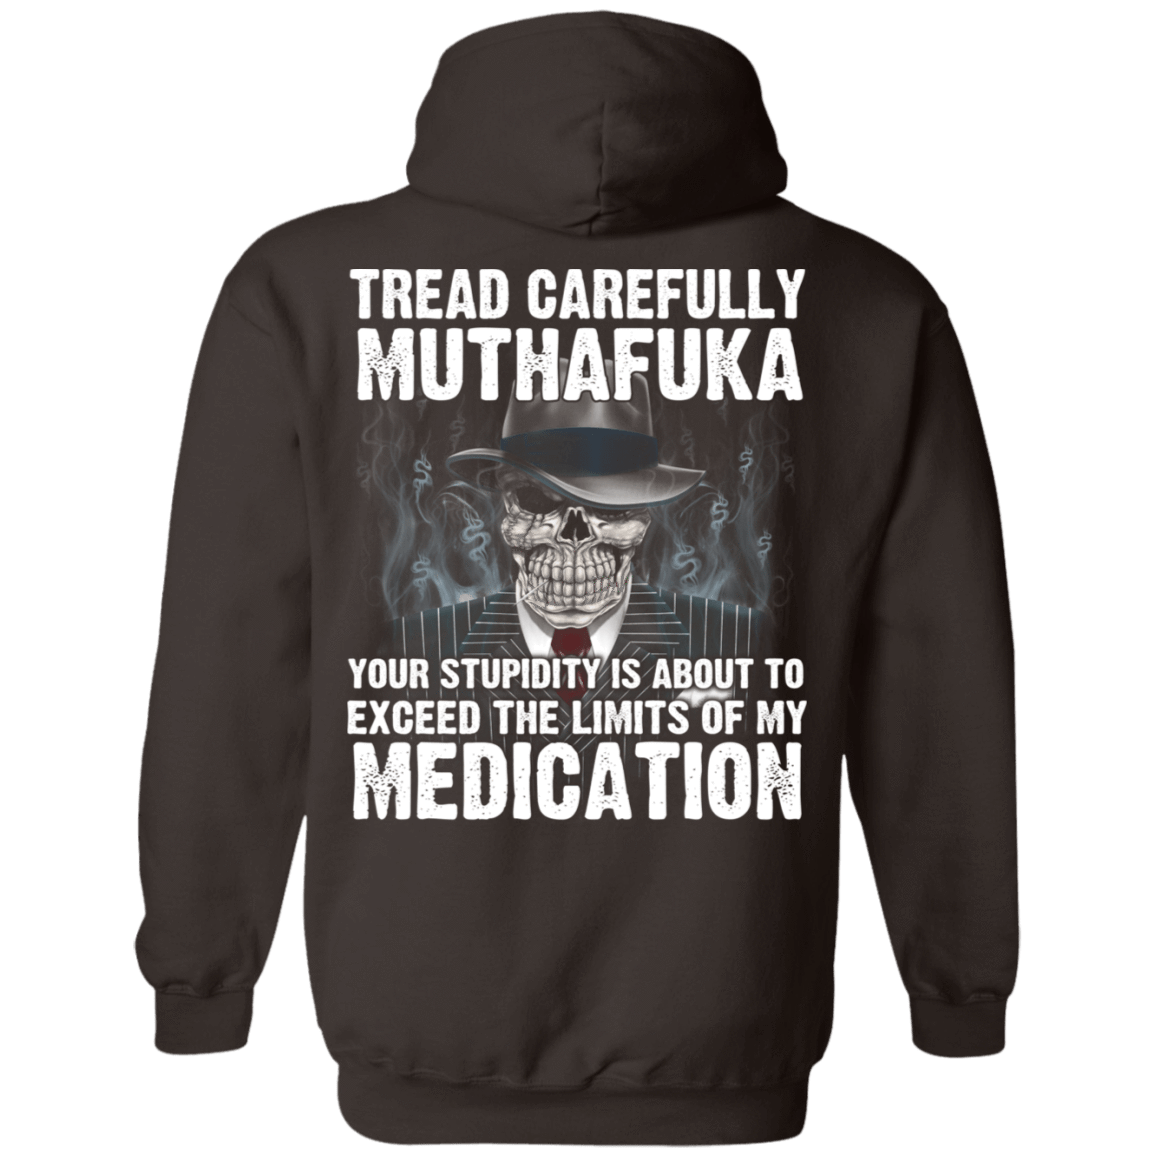 Tread Carefully Muthafuka Your Stupidity Is About To Exceed The Limits Of My Medication 541-4752-72709228-23095 - Tee Ript